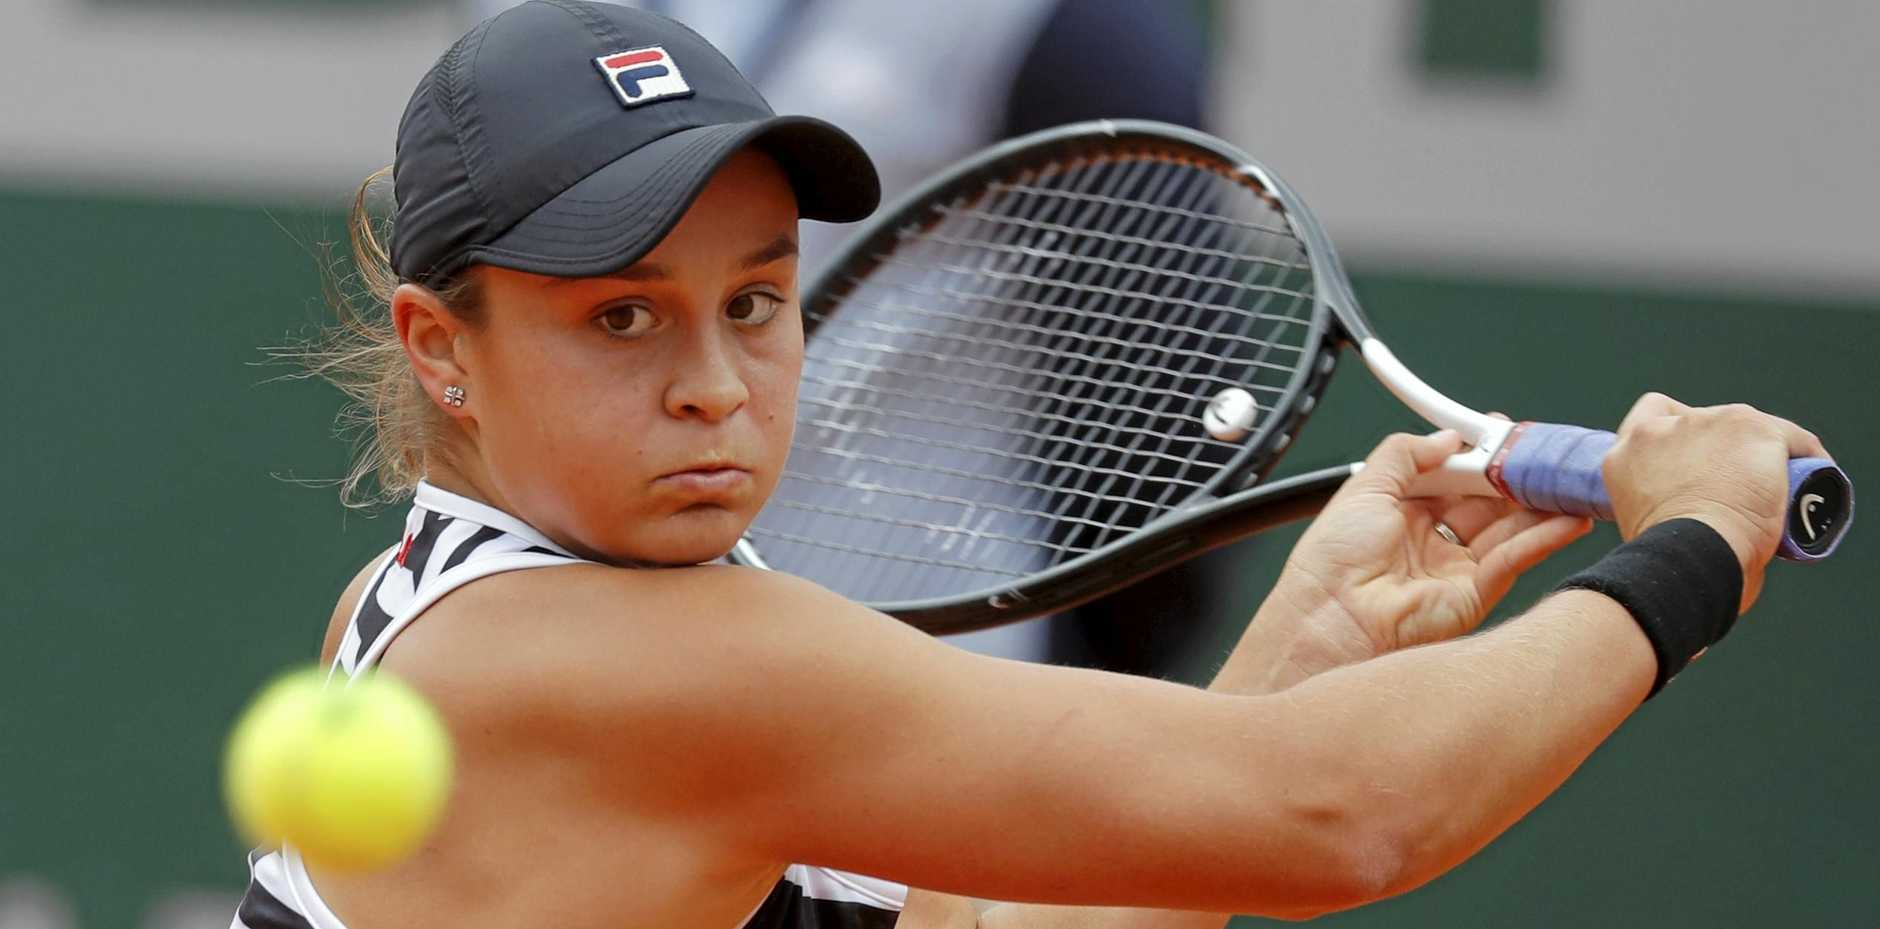 ON COURT: Australia's Ashleigh Barty plays a shot against Marketa Vondrousova of the Czech Republic during the women's final match of the French Open tennis tournament at Roland Garros in Paris.